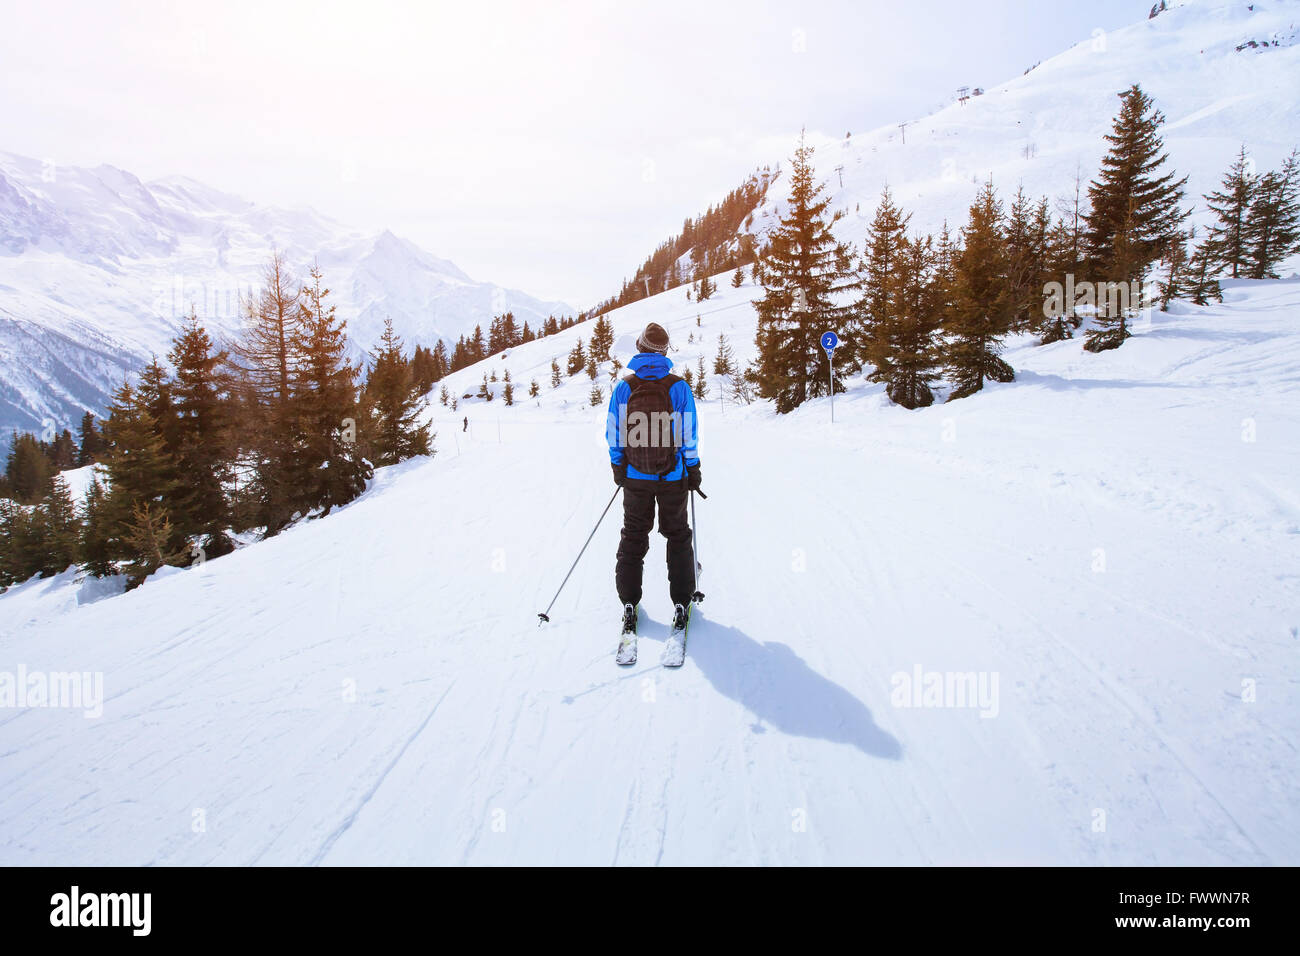 skiing in Alps, winter sport in mountains, skier and beautiful landscape - Stock Image